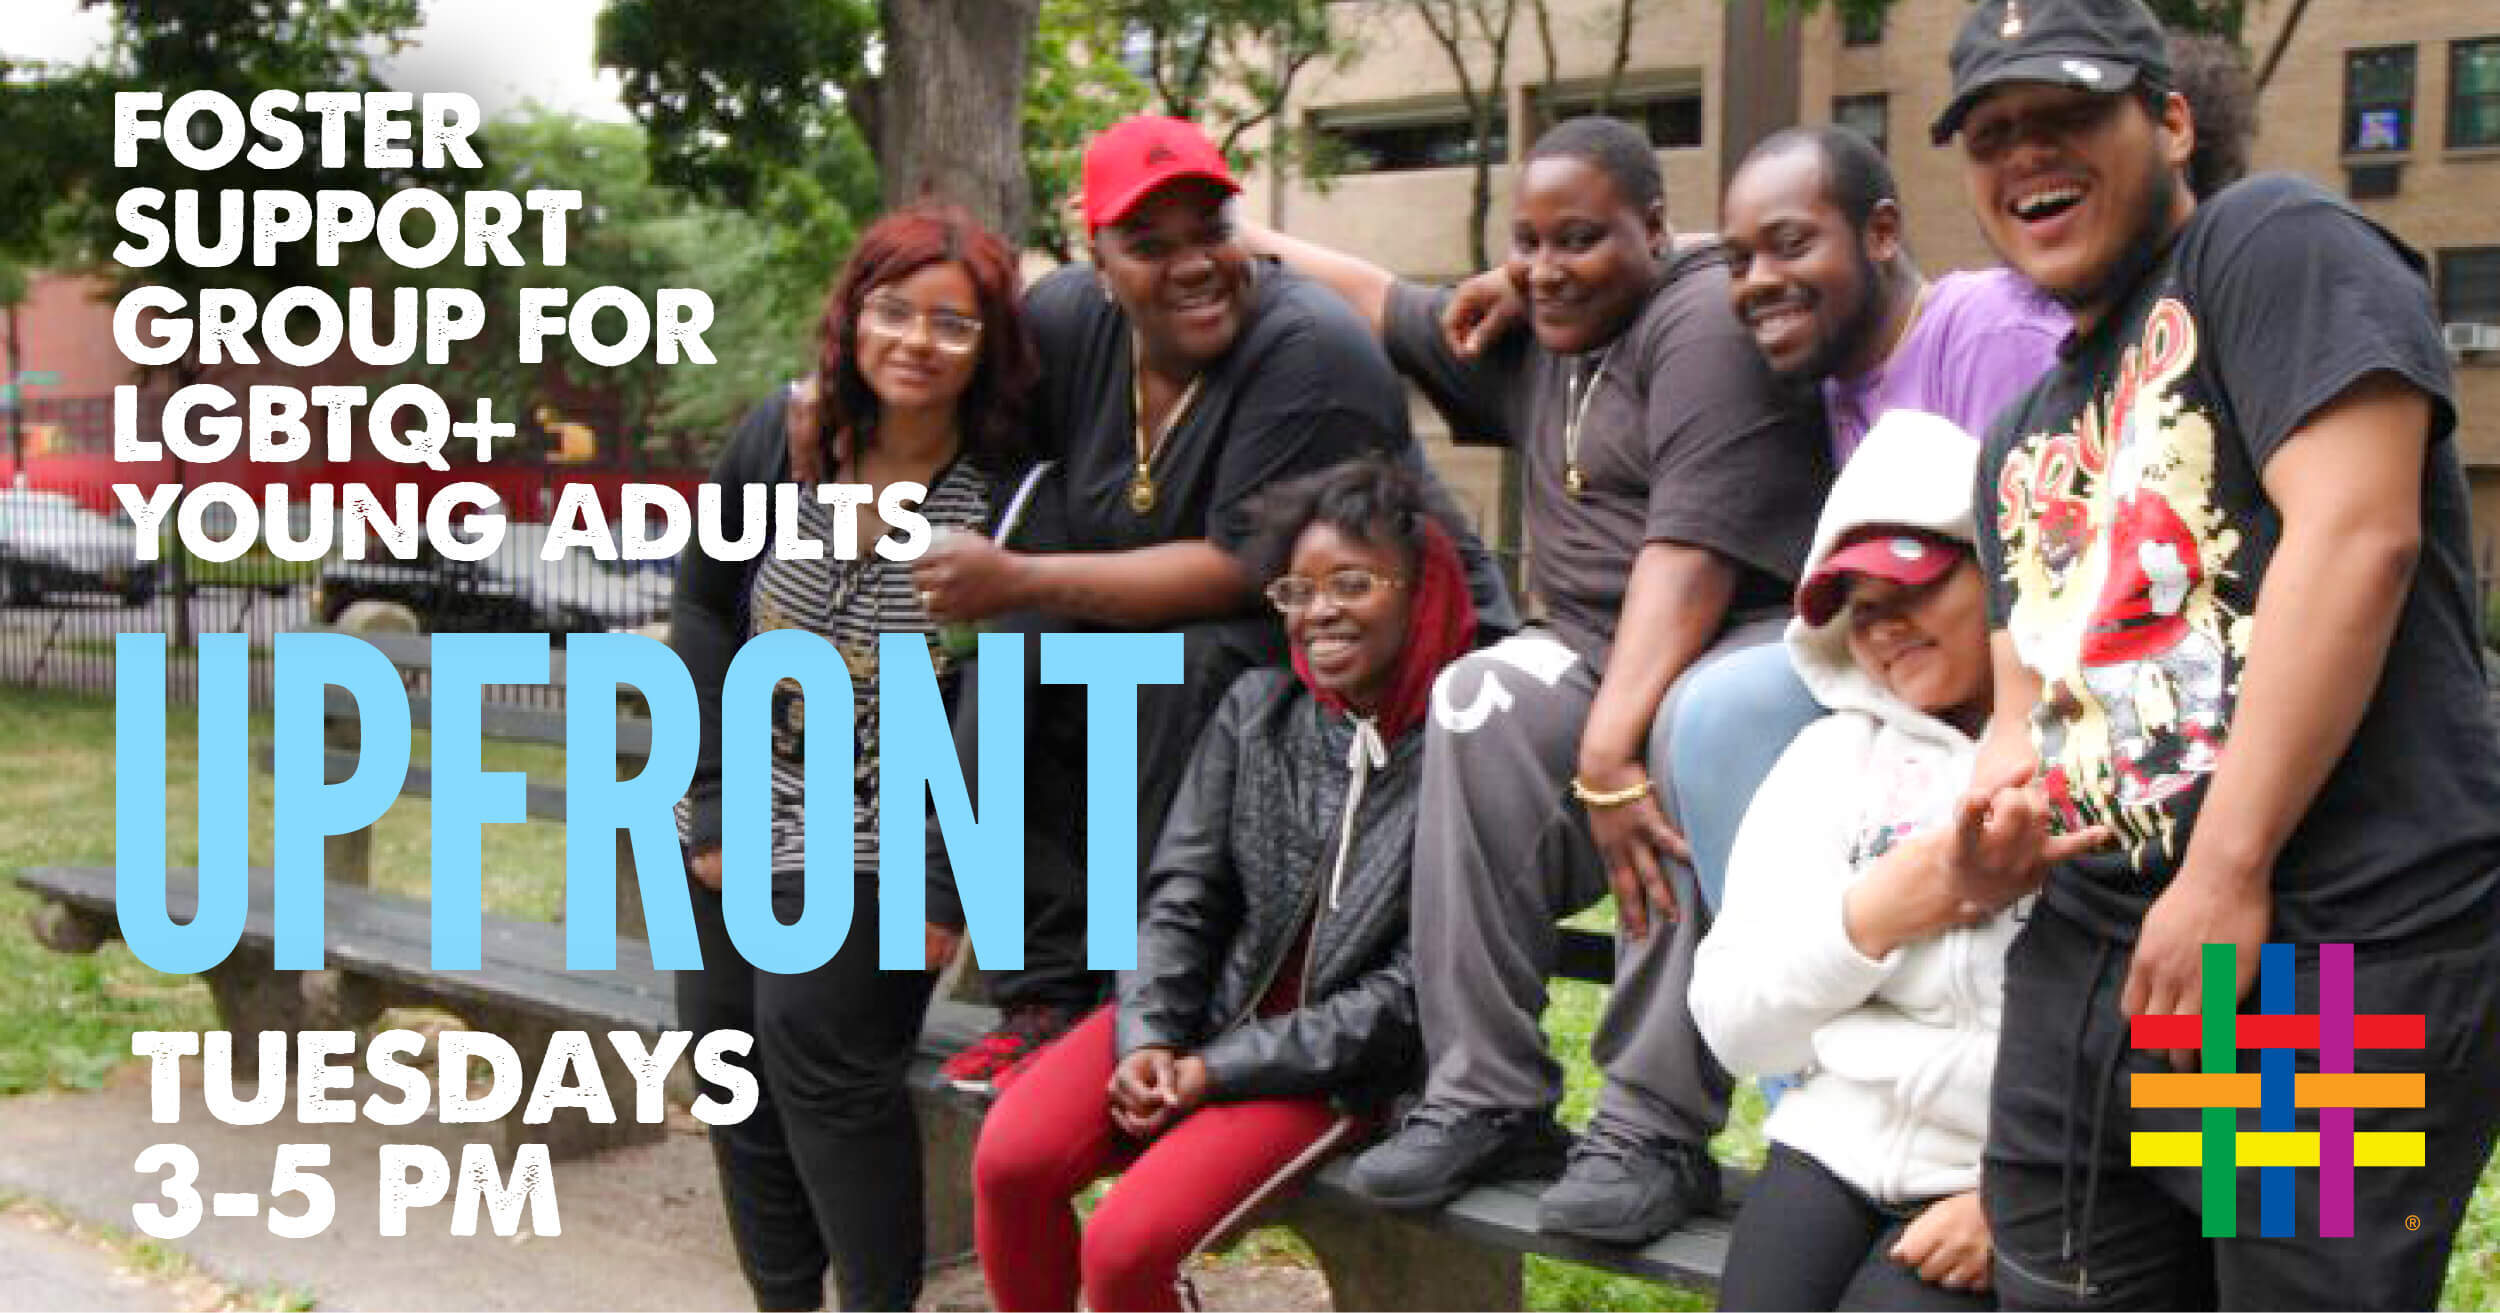 Upfront: Foster Support Group for LGBTQ+ Young Adults at Brooklyn Community Pride Center